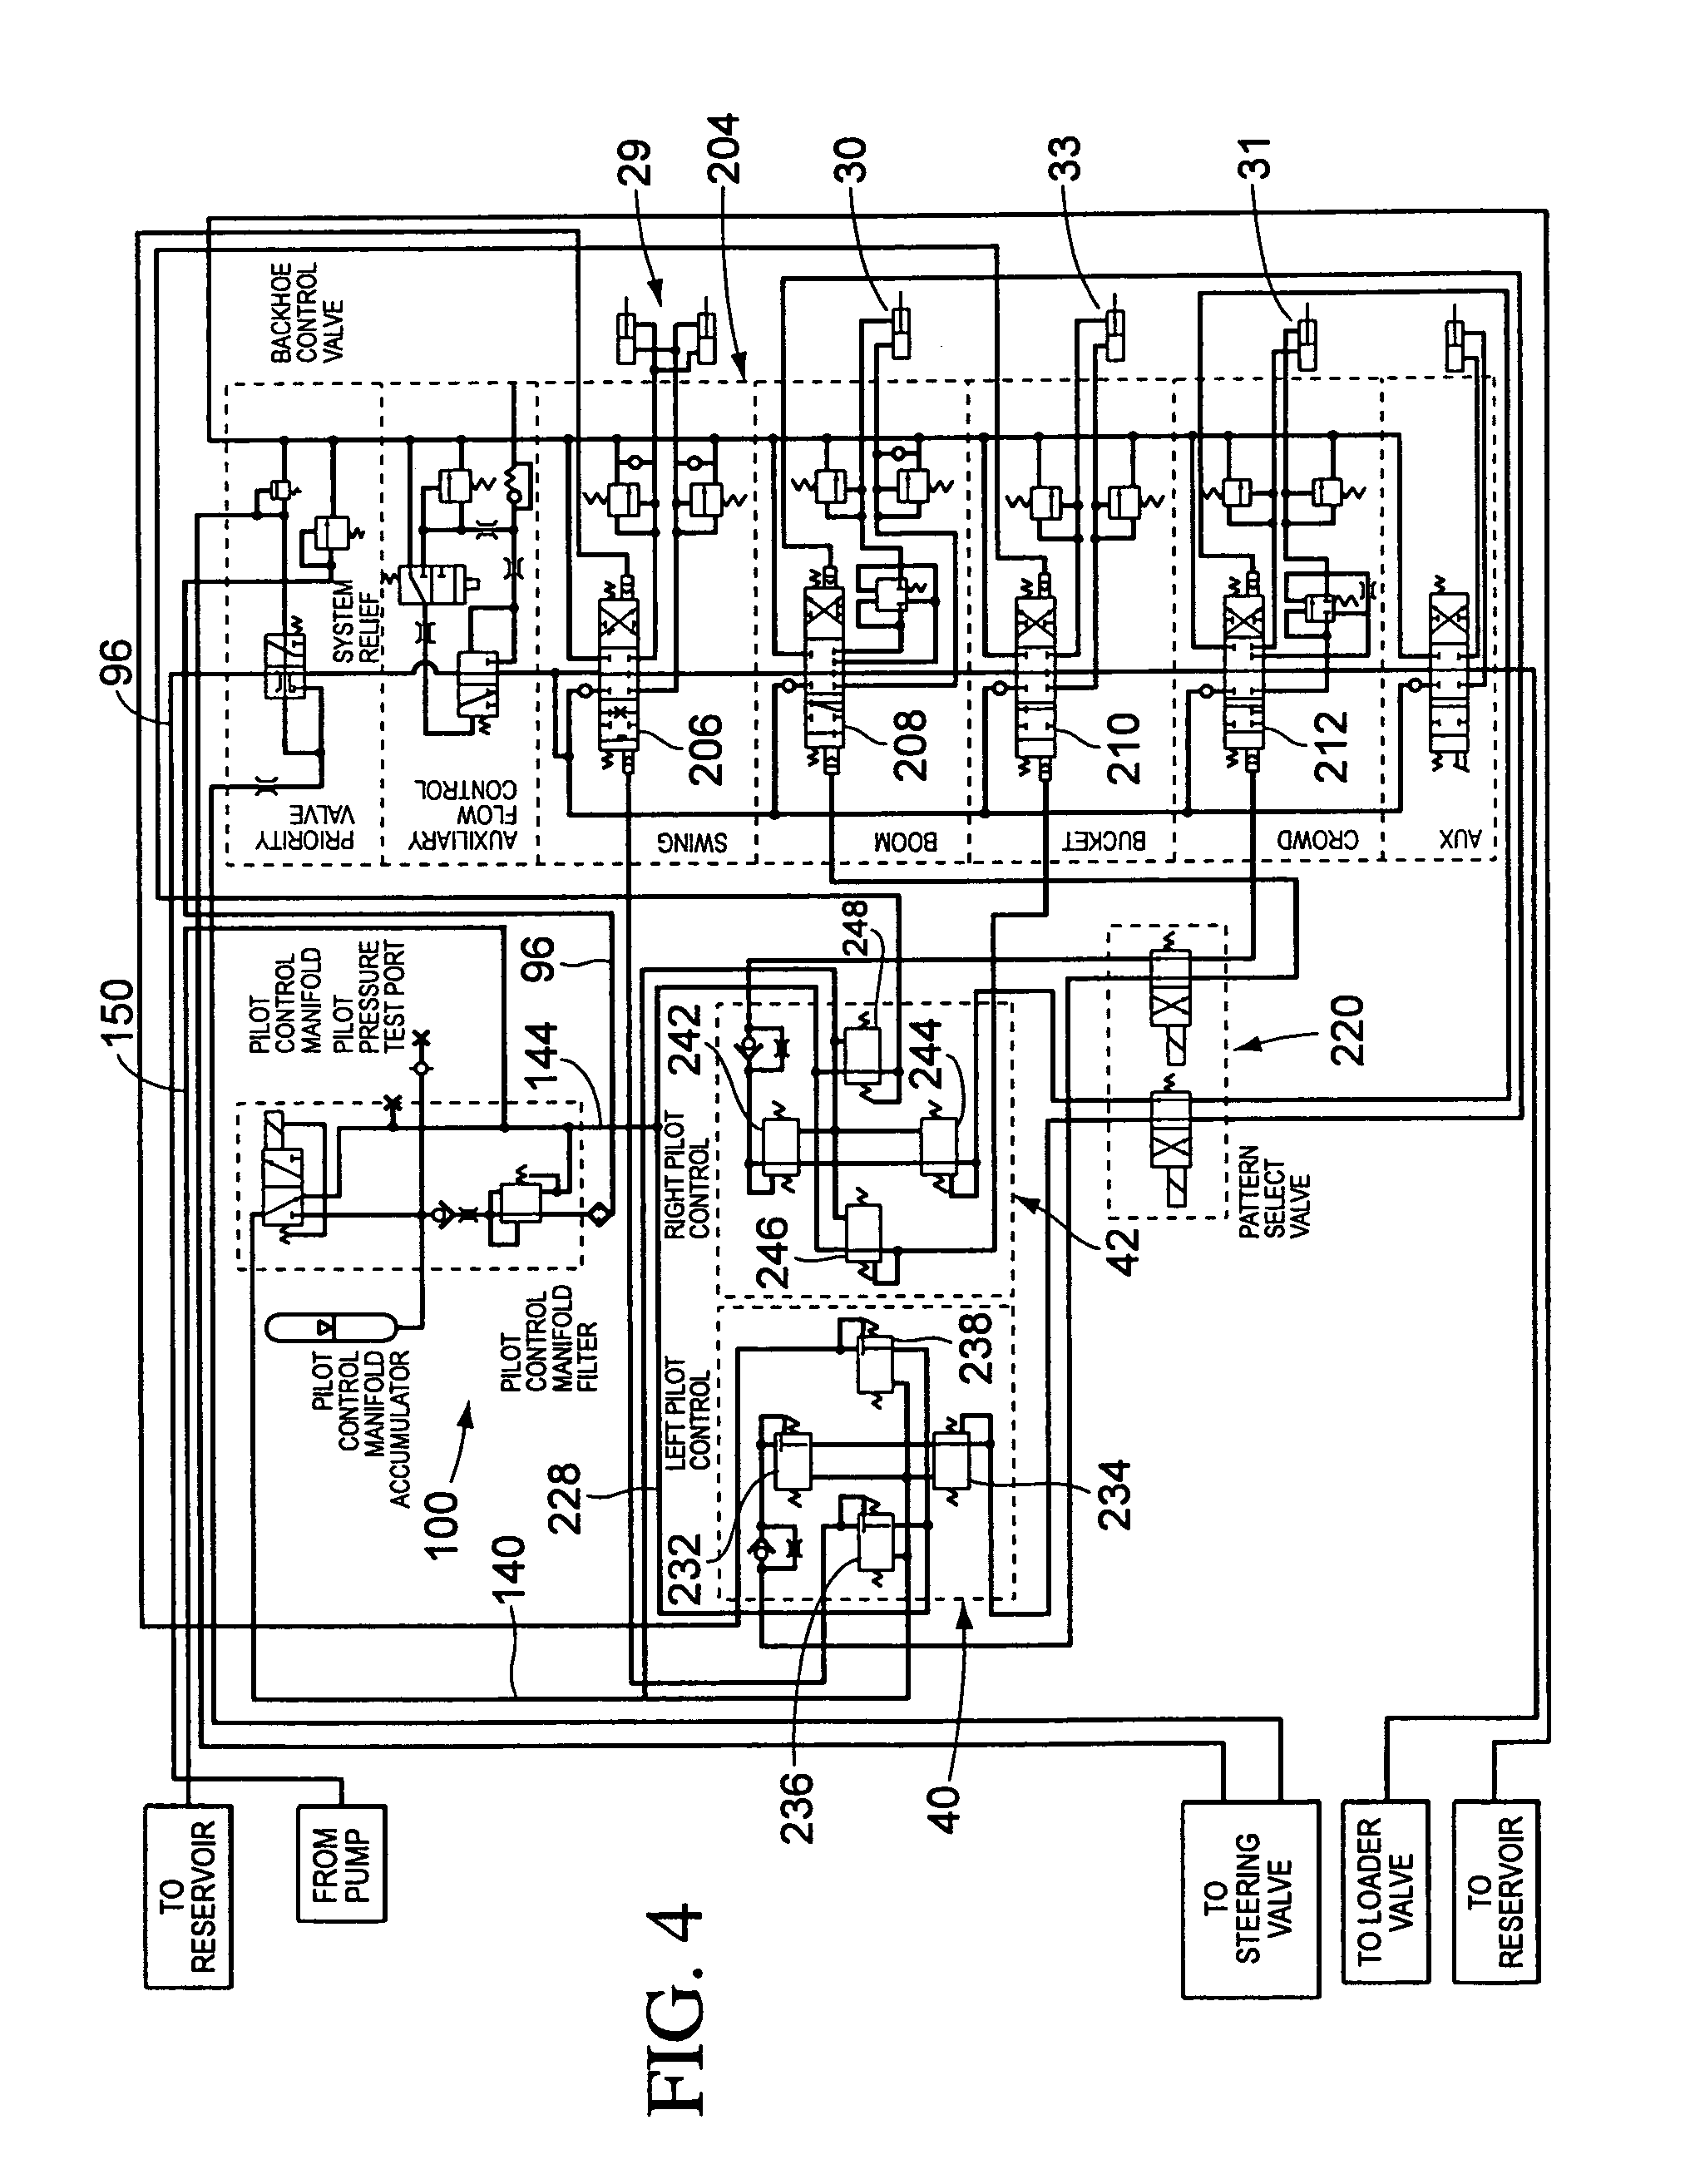 patent us7036248 pattern select valve for control levers of a John Deere Alternator Wiring john deere 310 backhoe wiring diagram John Deere 410B Parts Diagram John Deere 310D 310E John Deere Electrical Schematics